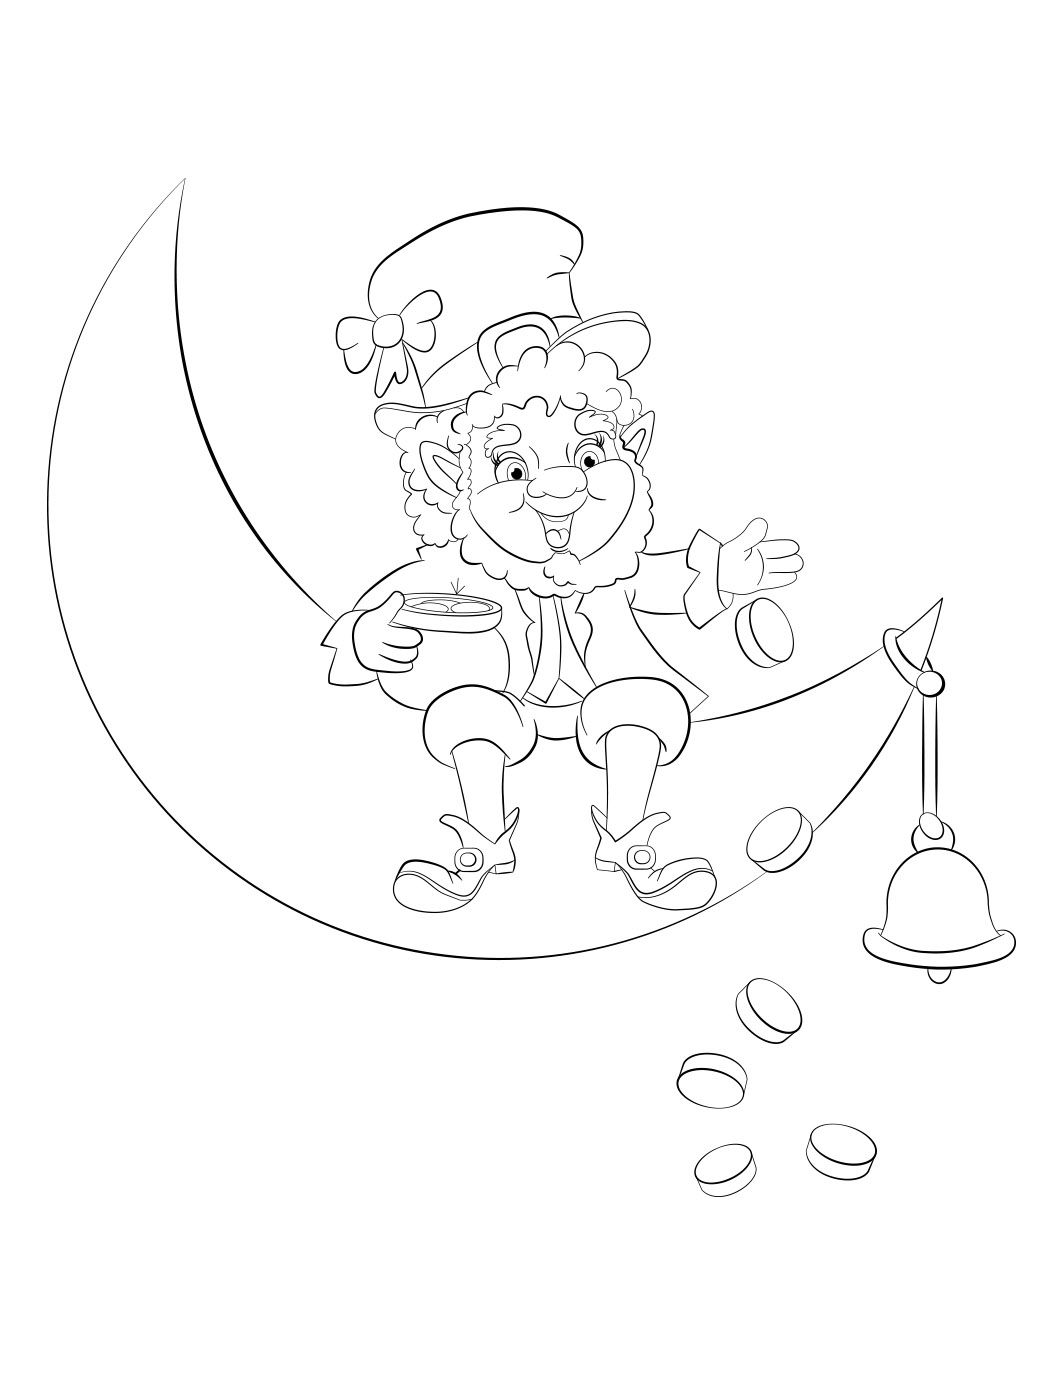 Color Sheet Kids Jpg 1063 1375 Coloring Pages Color